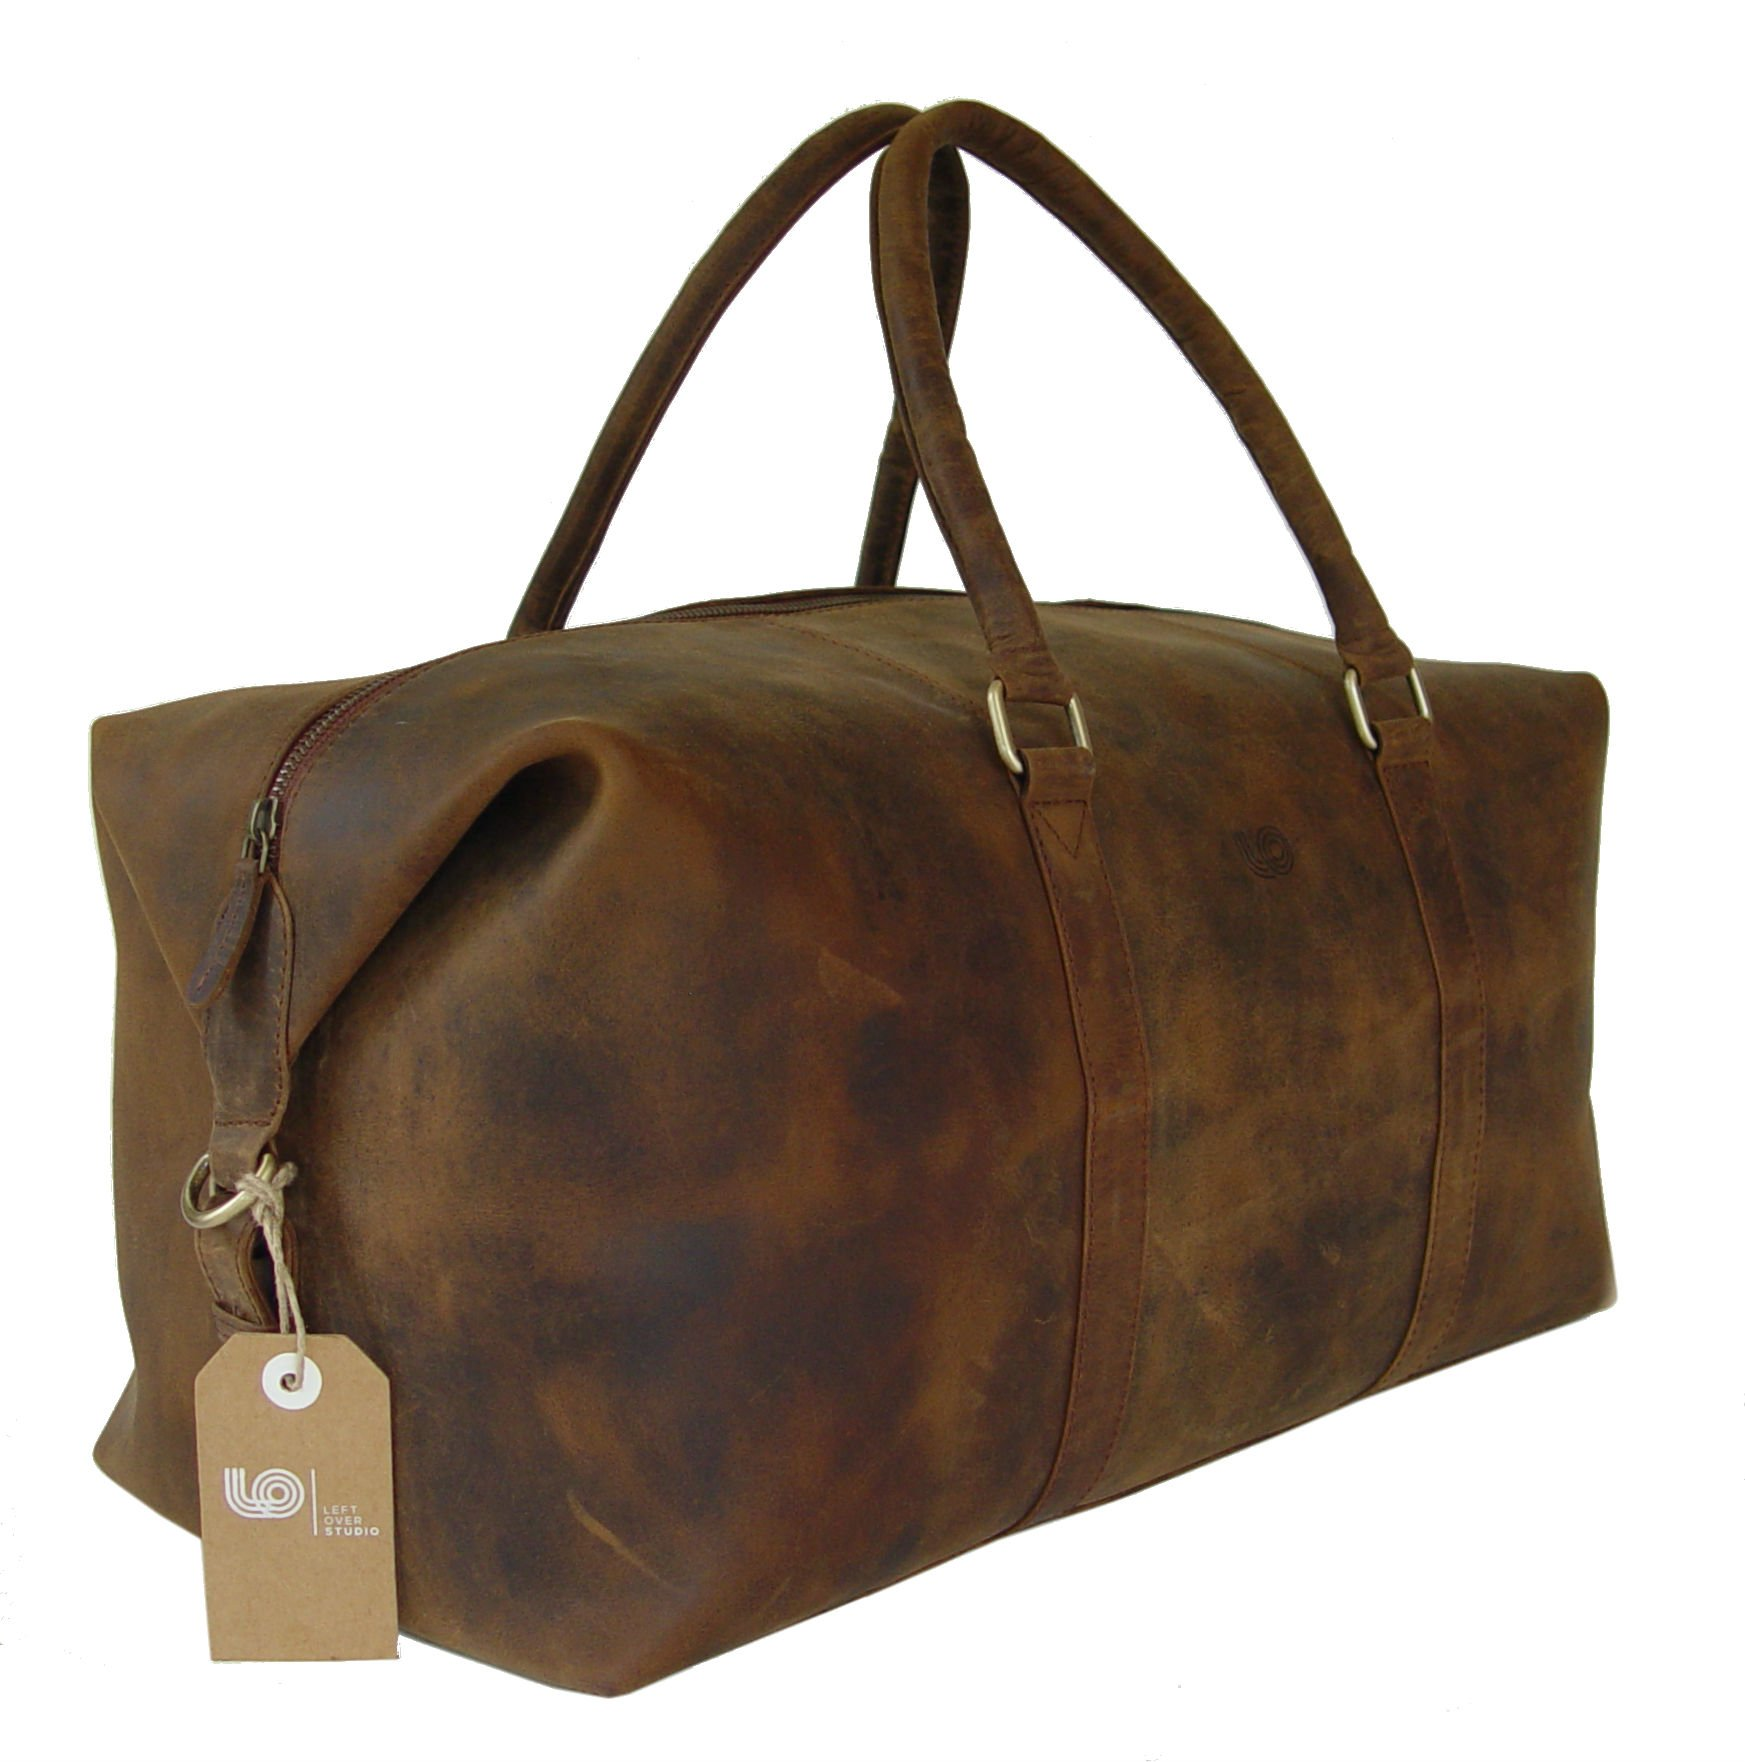 LeftOver Studio Expandable Weekend Overnight Travel Duffel Bag in Thick Oil Pull Hunter Water Buffalo Leather by Leftover Studio (Image #5)